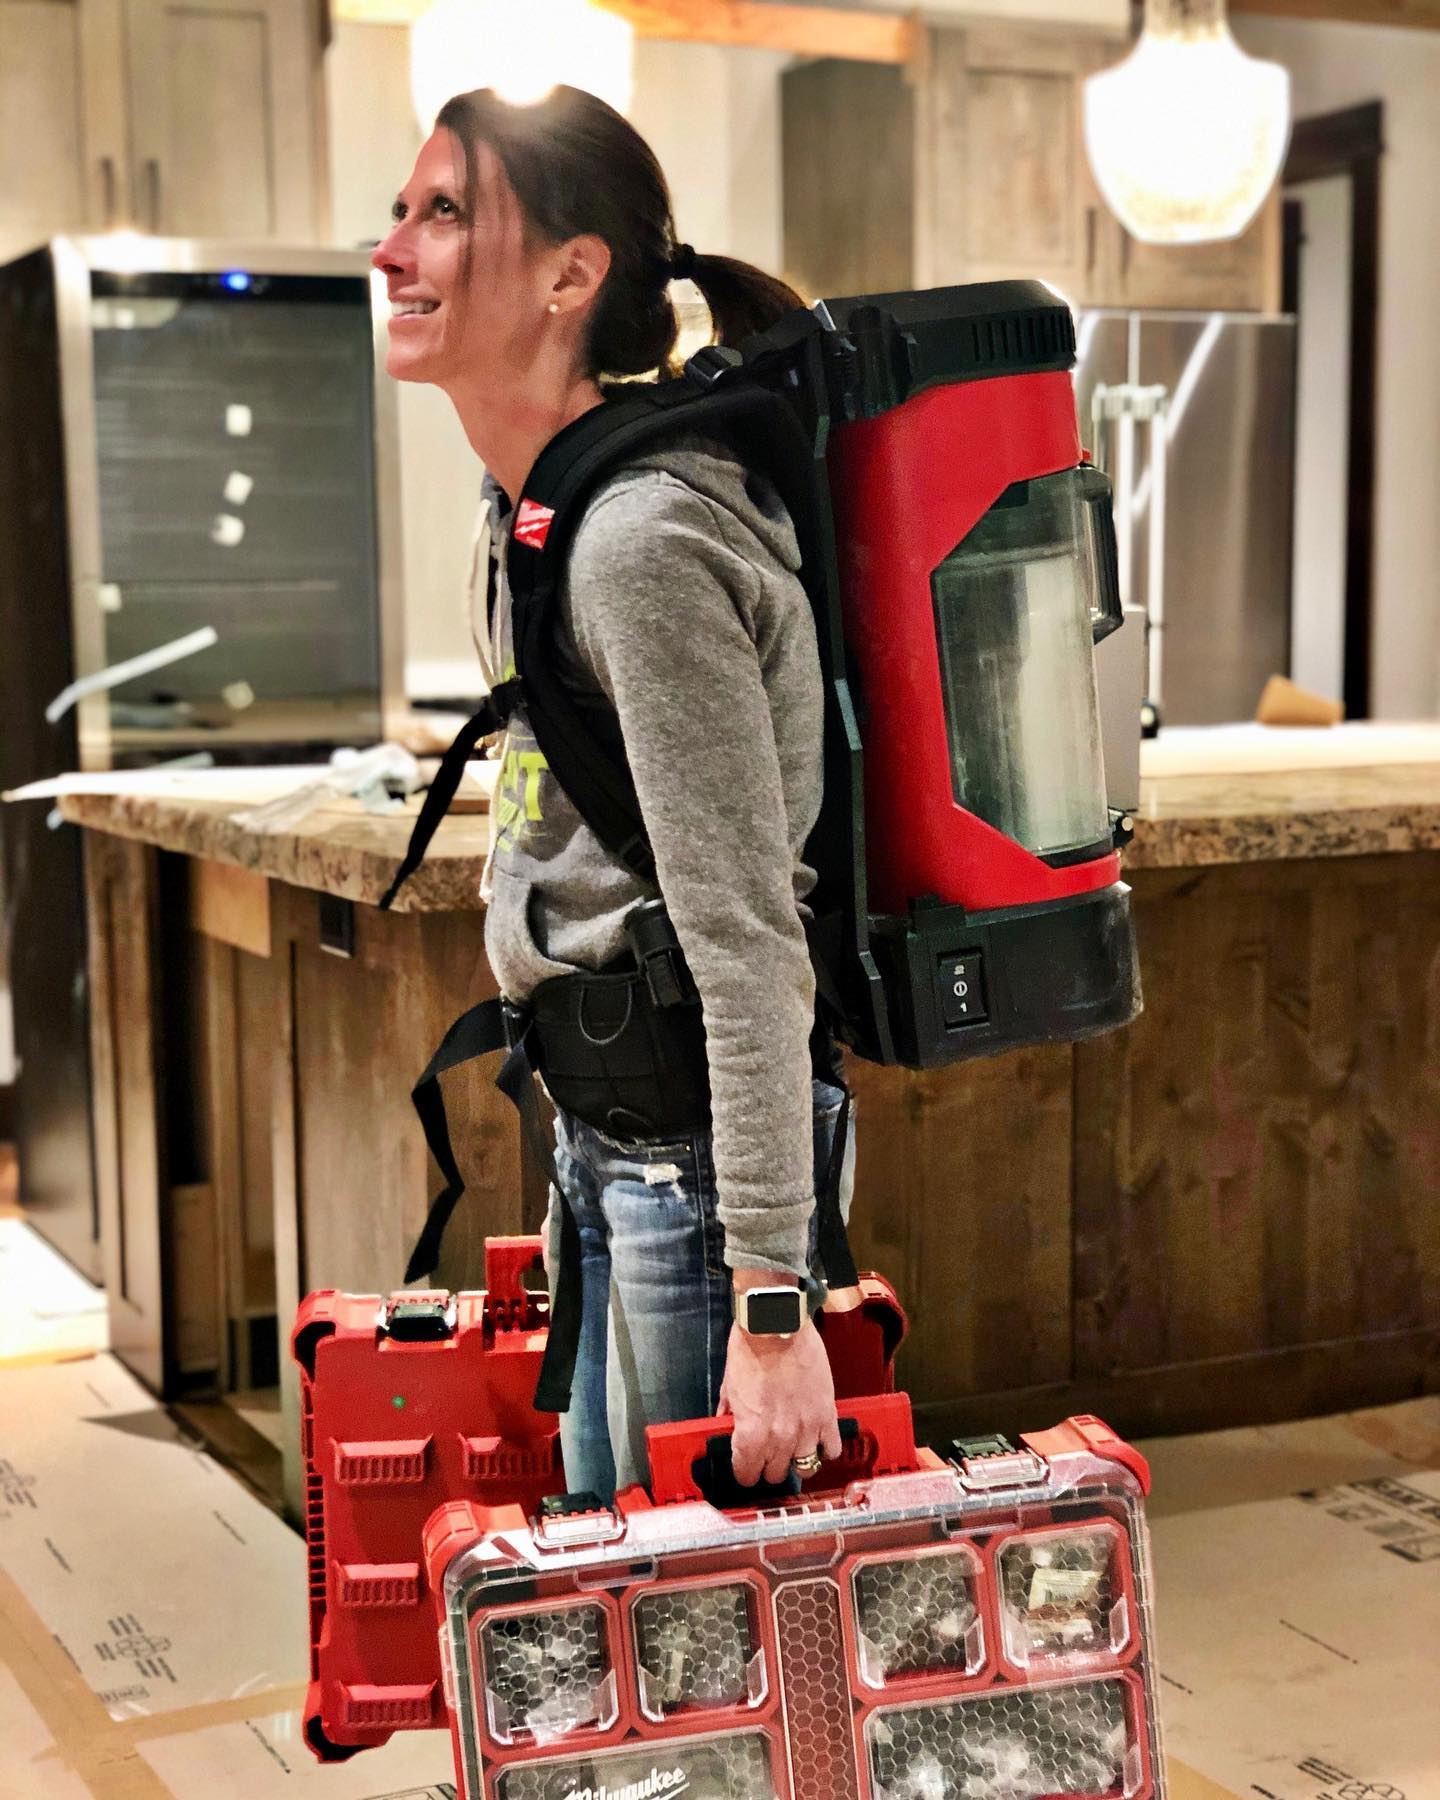 Rocking a new jobsite look...I'll call it builder-girl fashion whitefish custom home builder